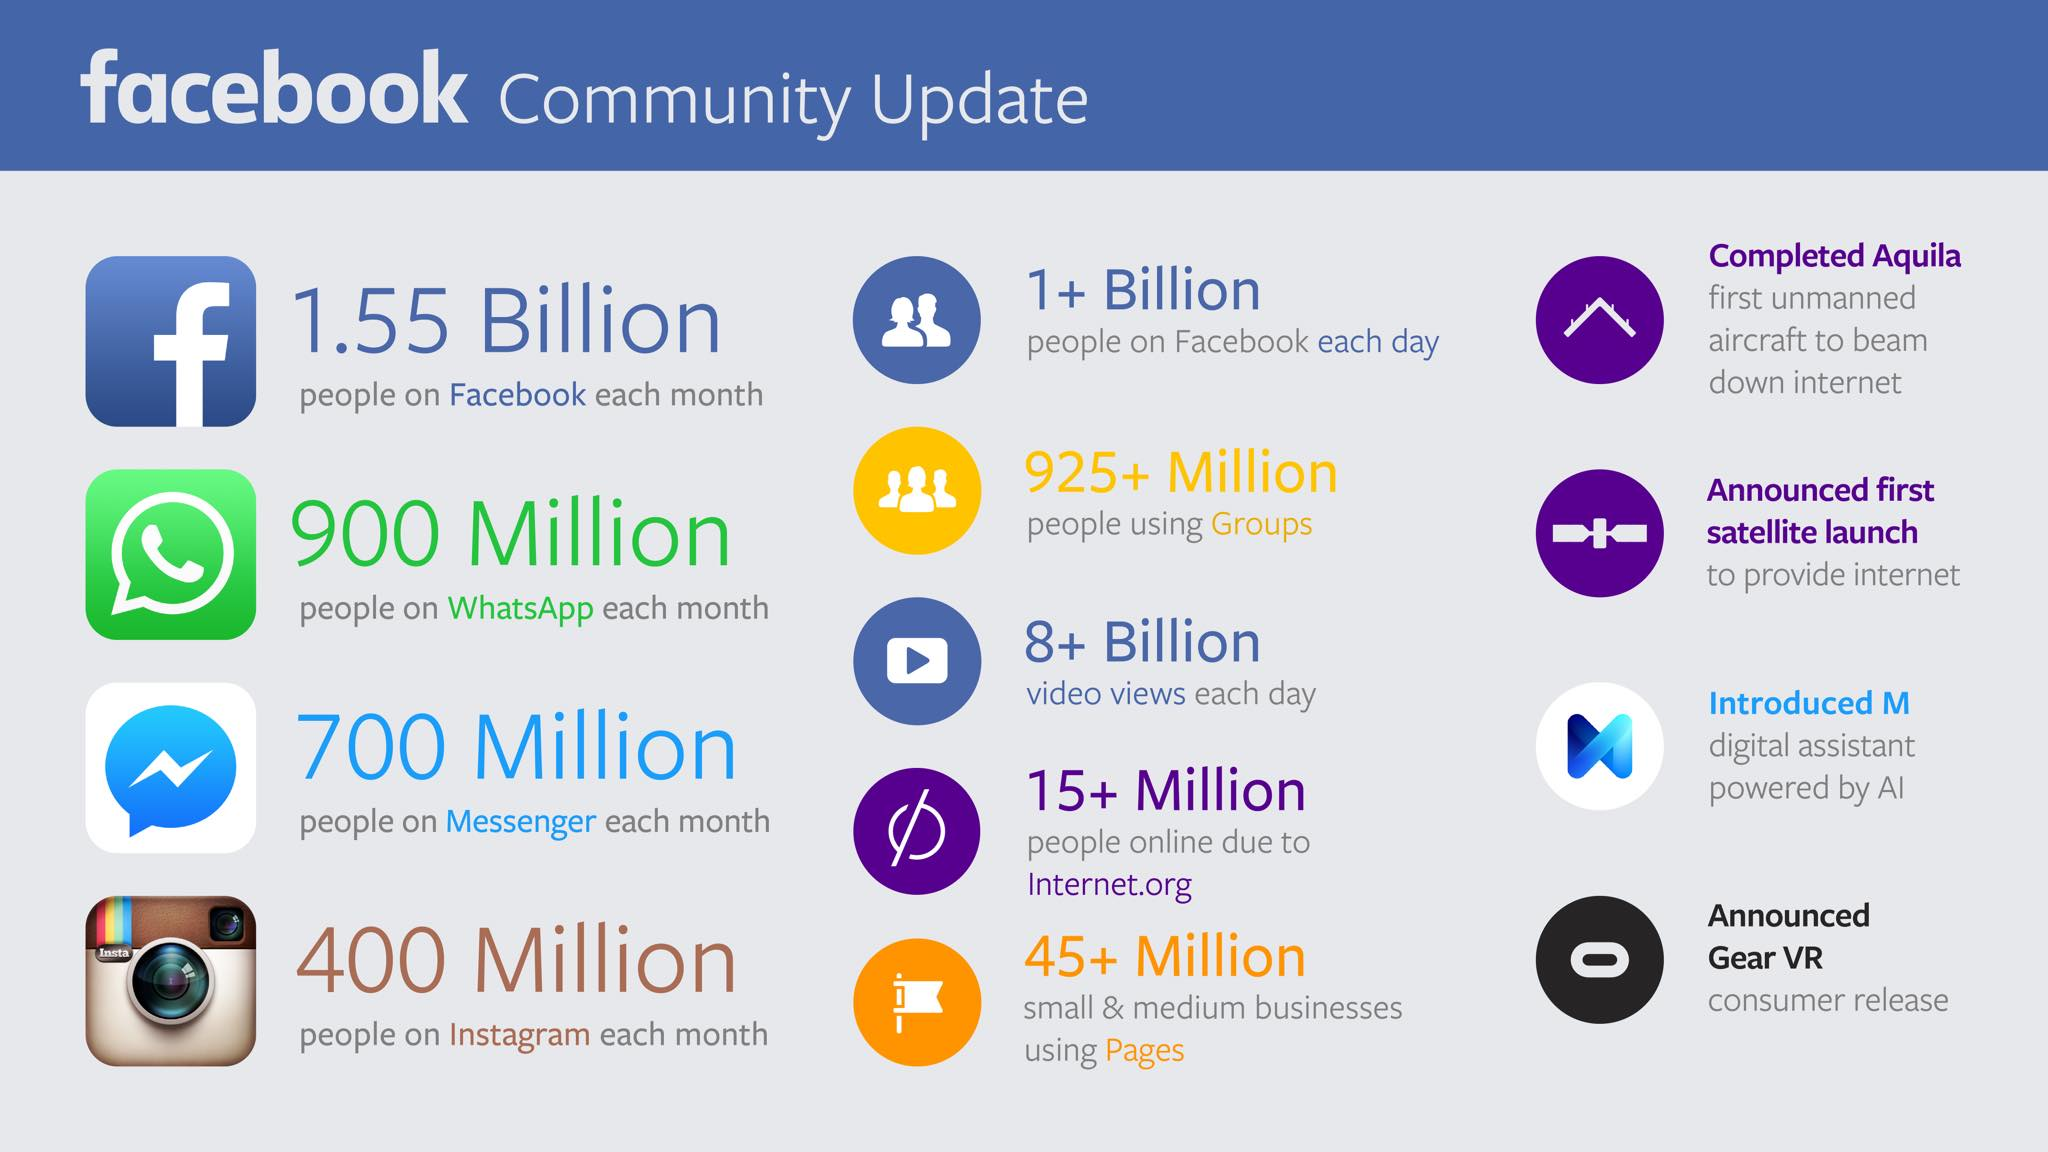 Facebook Community Update